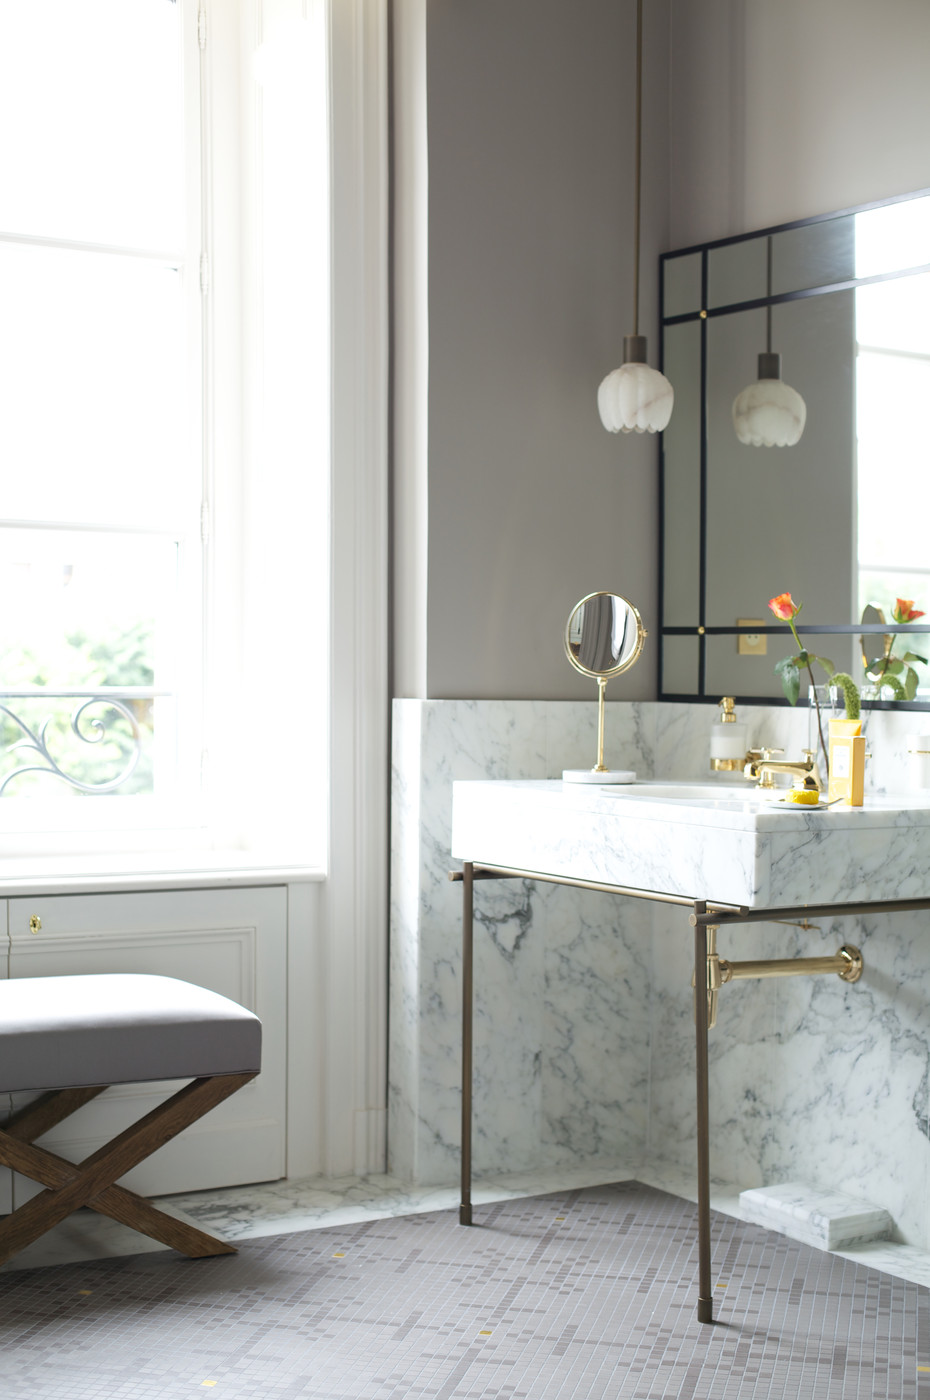 Delicate pendant lighting in a powder room with marble detailing